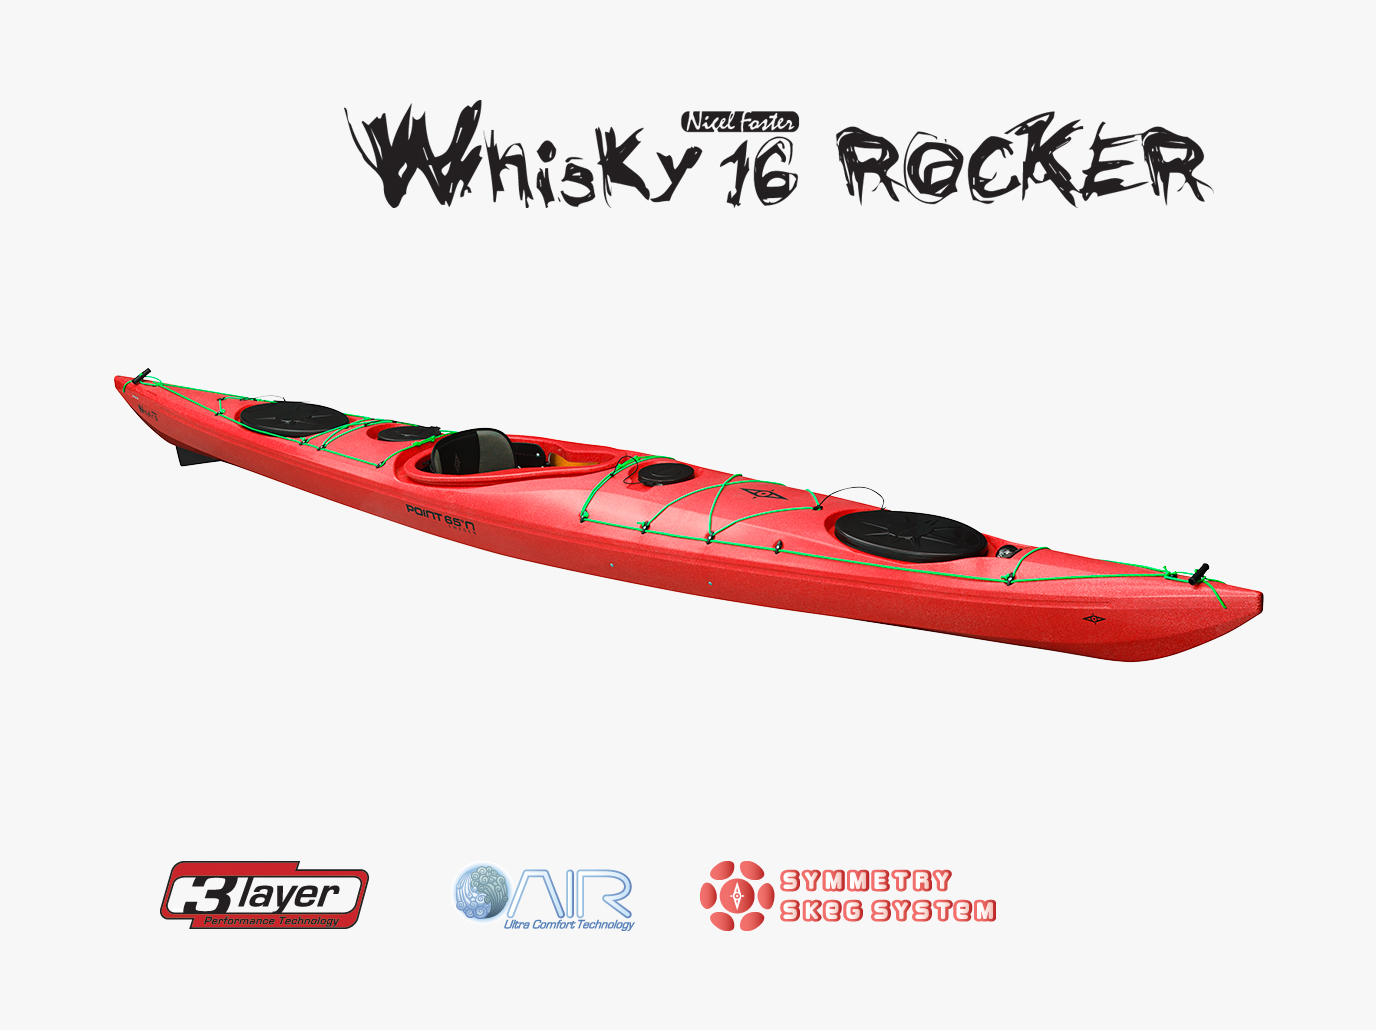 seekajak whisky 16 rocker